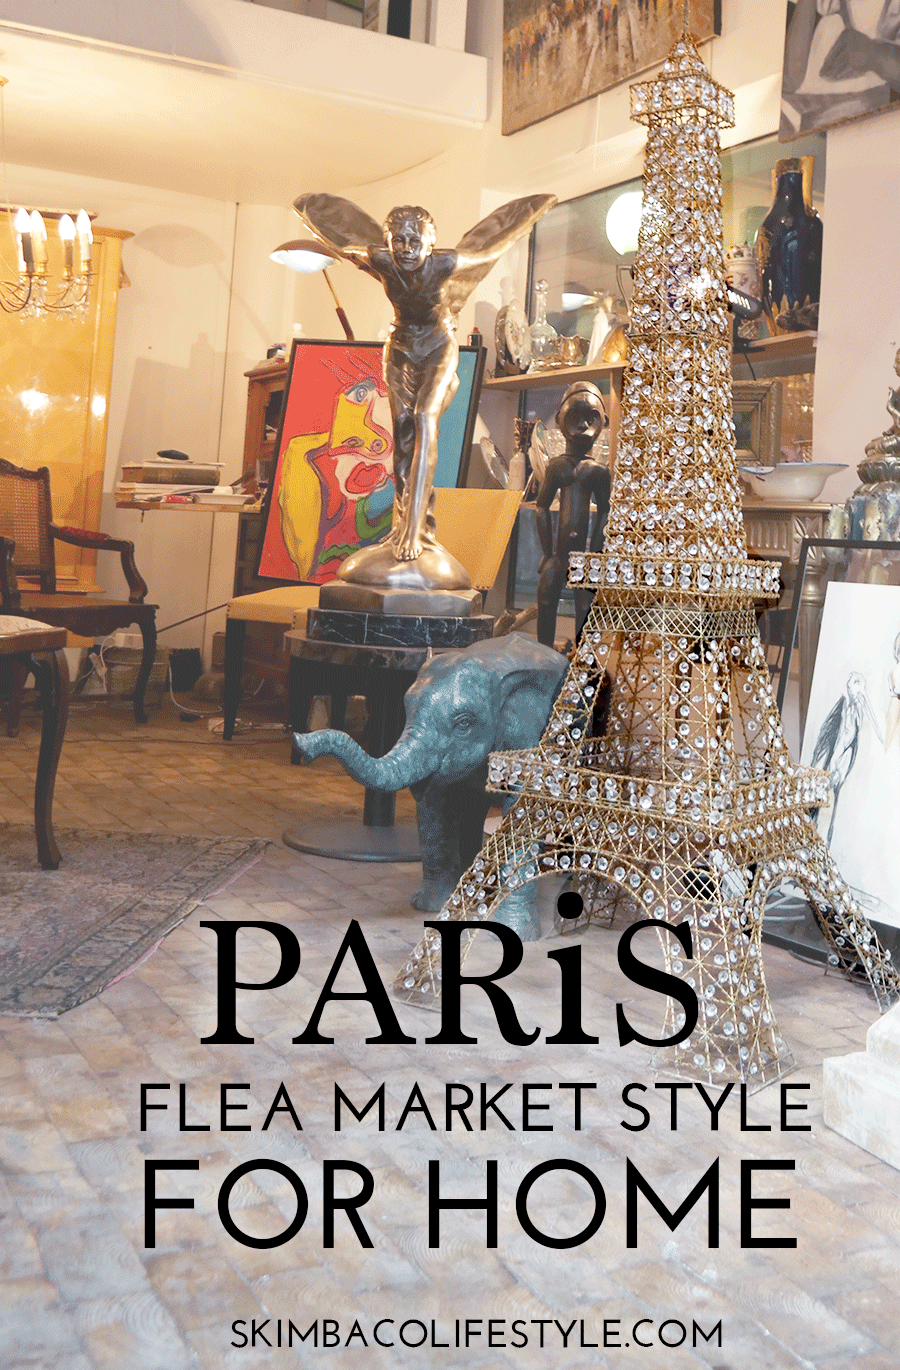 Paris Flea Market Style As Home Decorating Inspiration